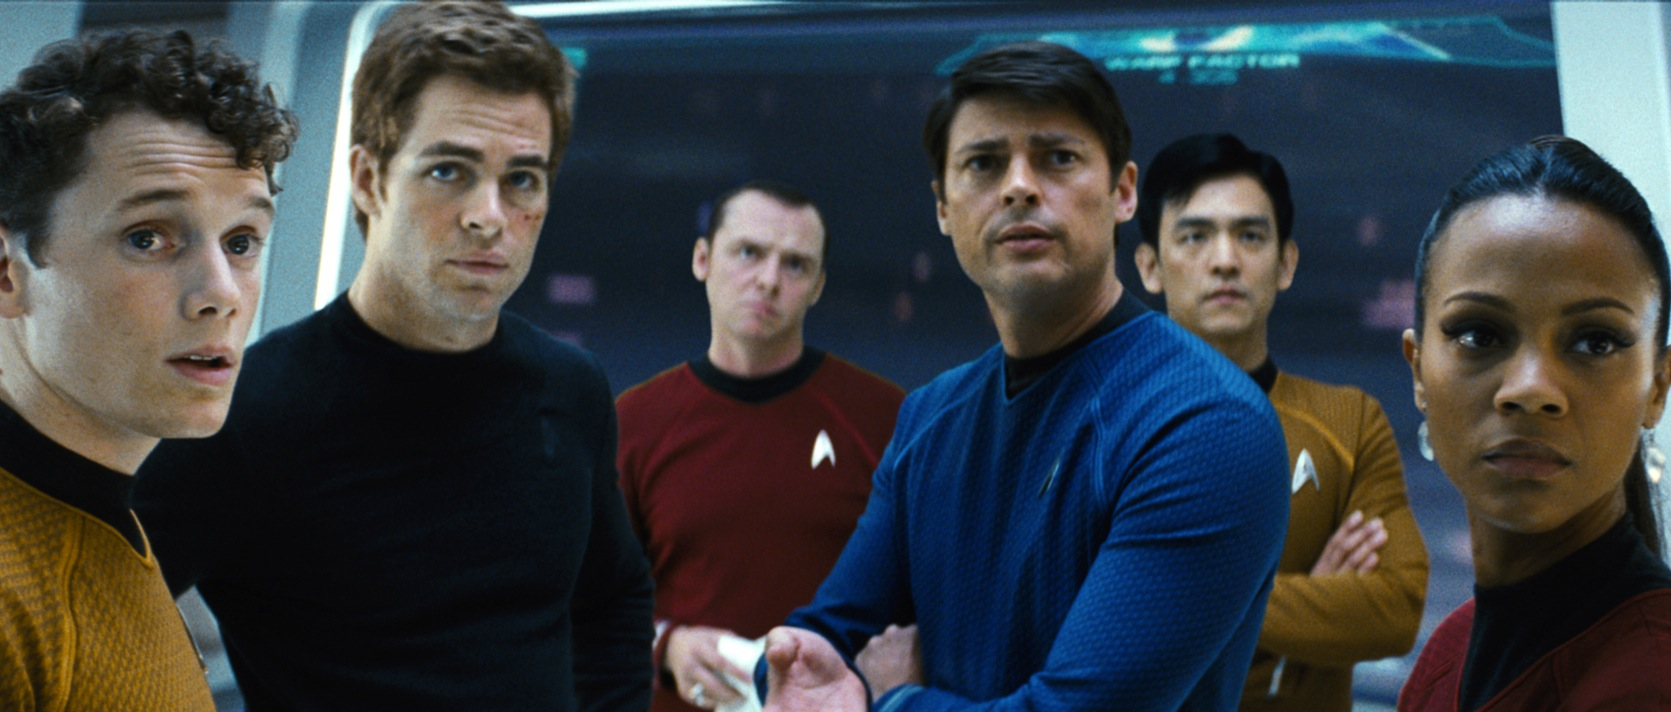 star_trek_2009_jj_abrams